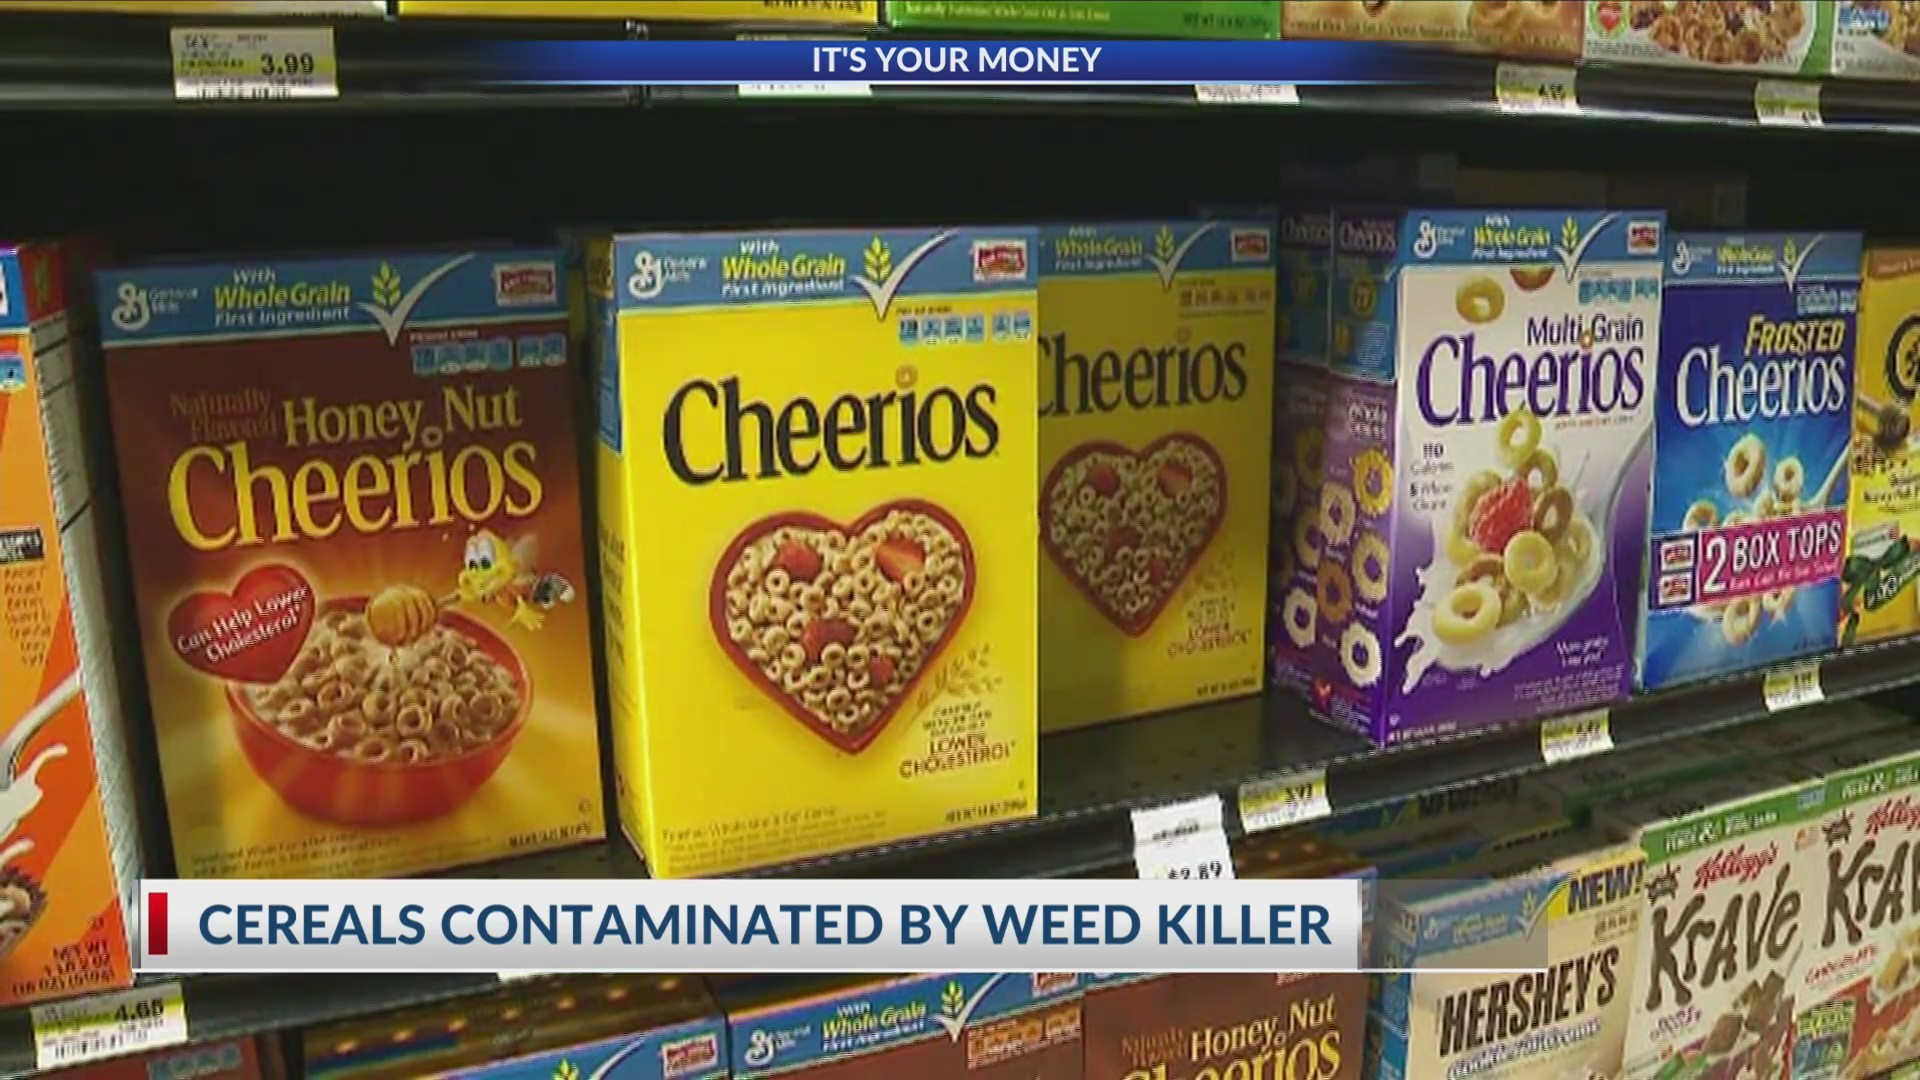 Cereals contaminated by weed killer